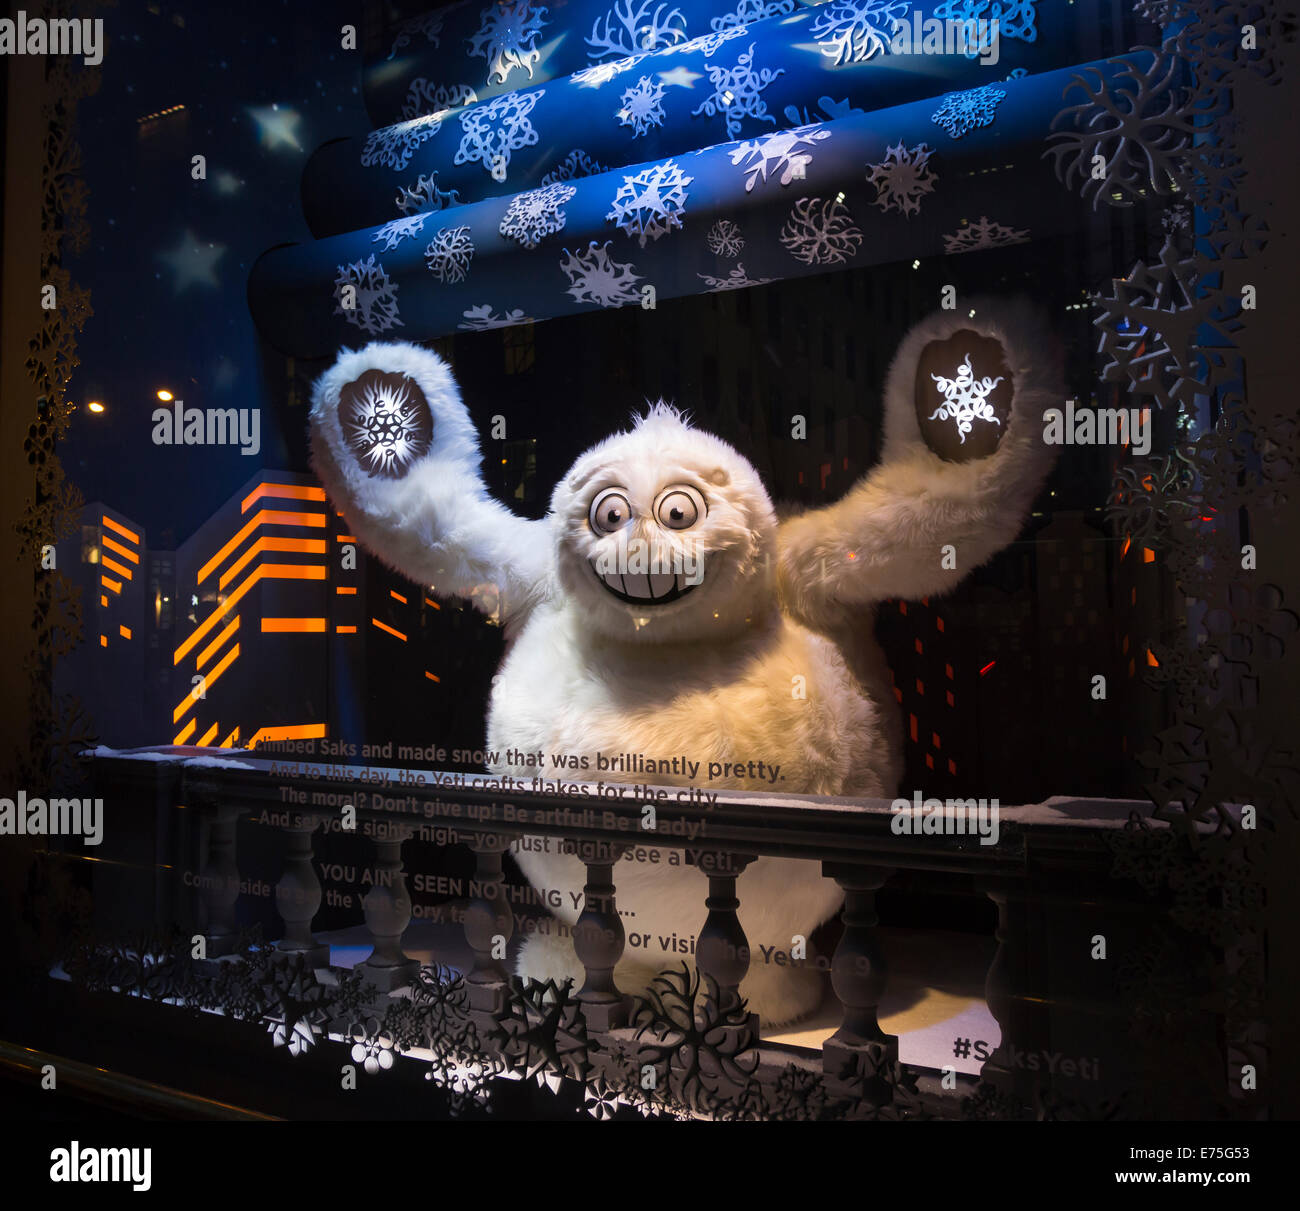 Christmas yeti in Saks Fifth Avenue traditional festive Christmas ...